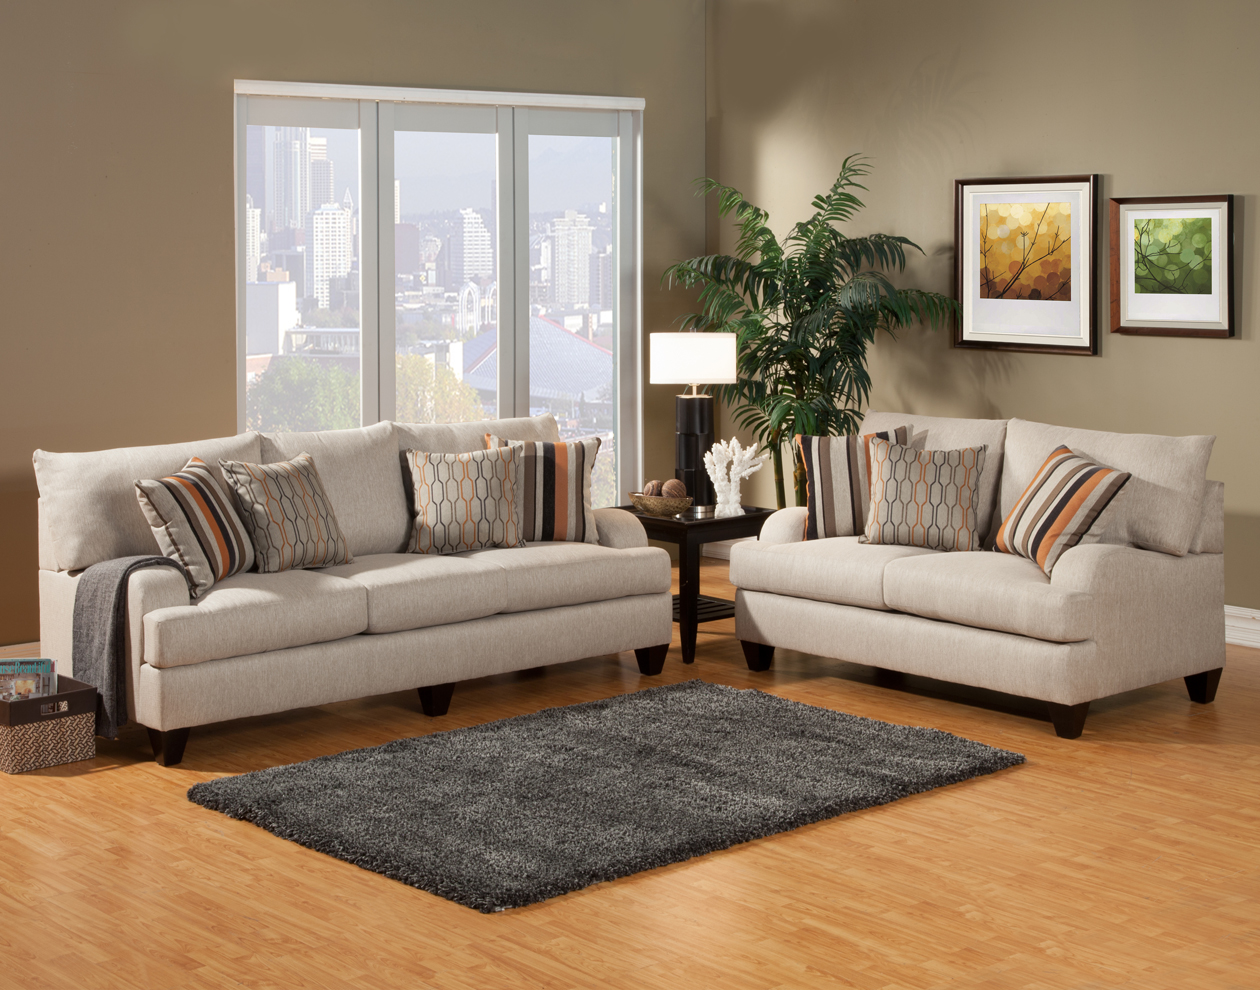 Sofa & Loveseat (Fabric)